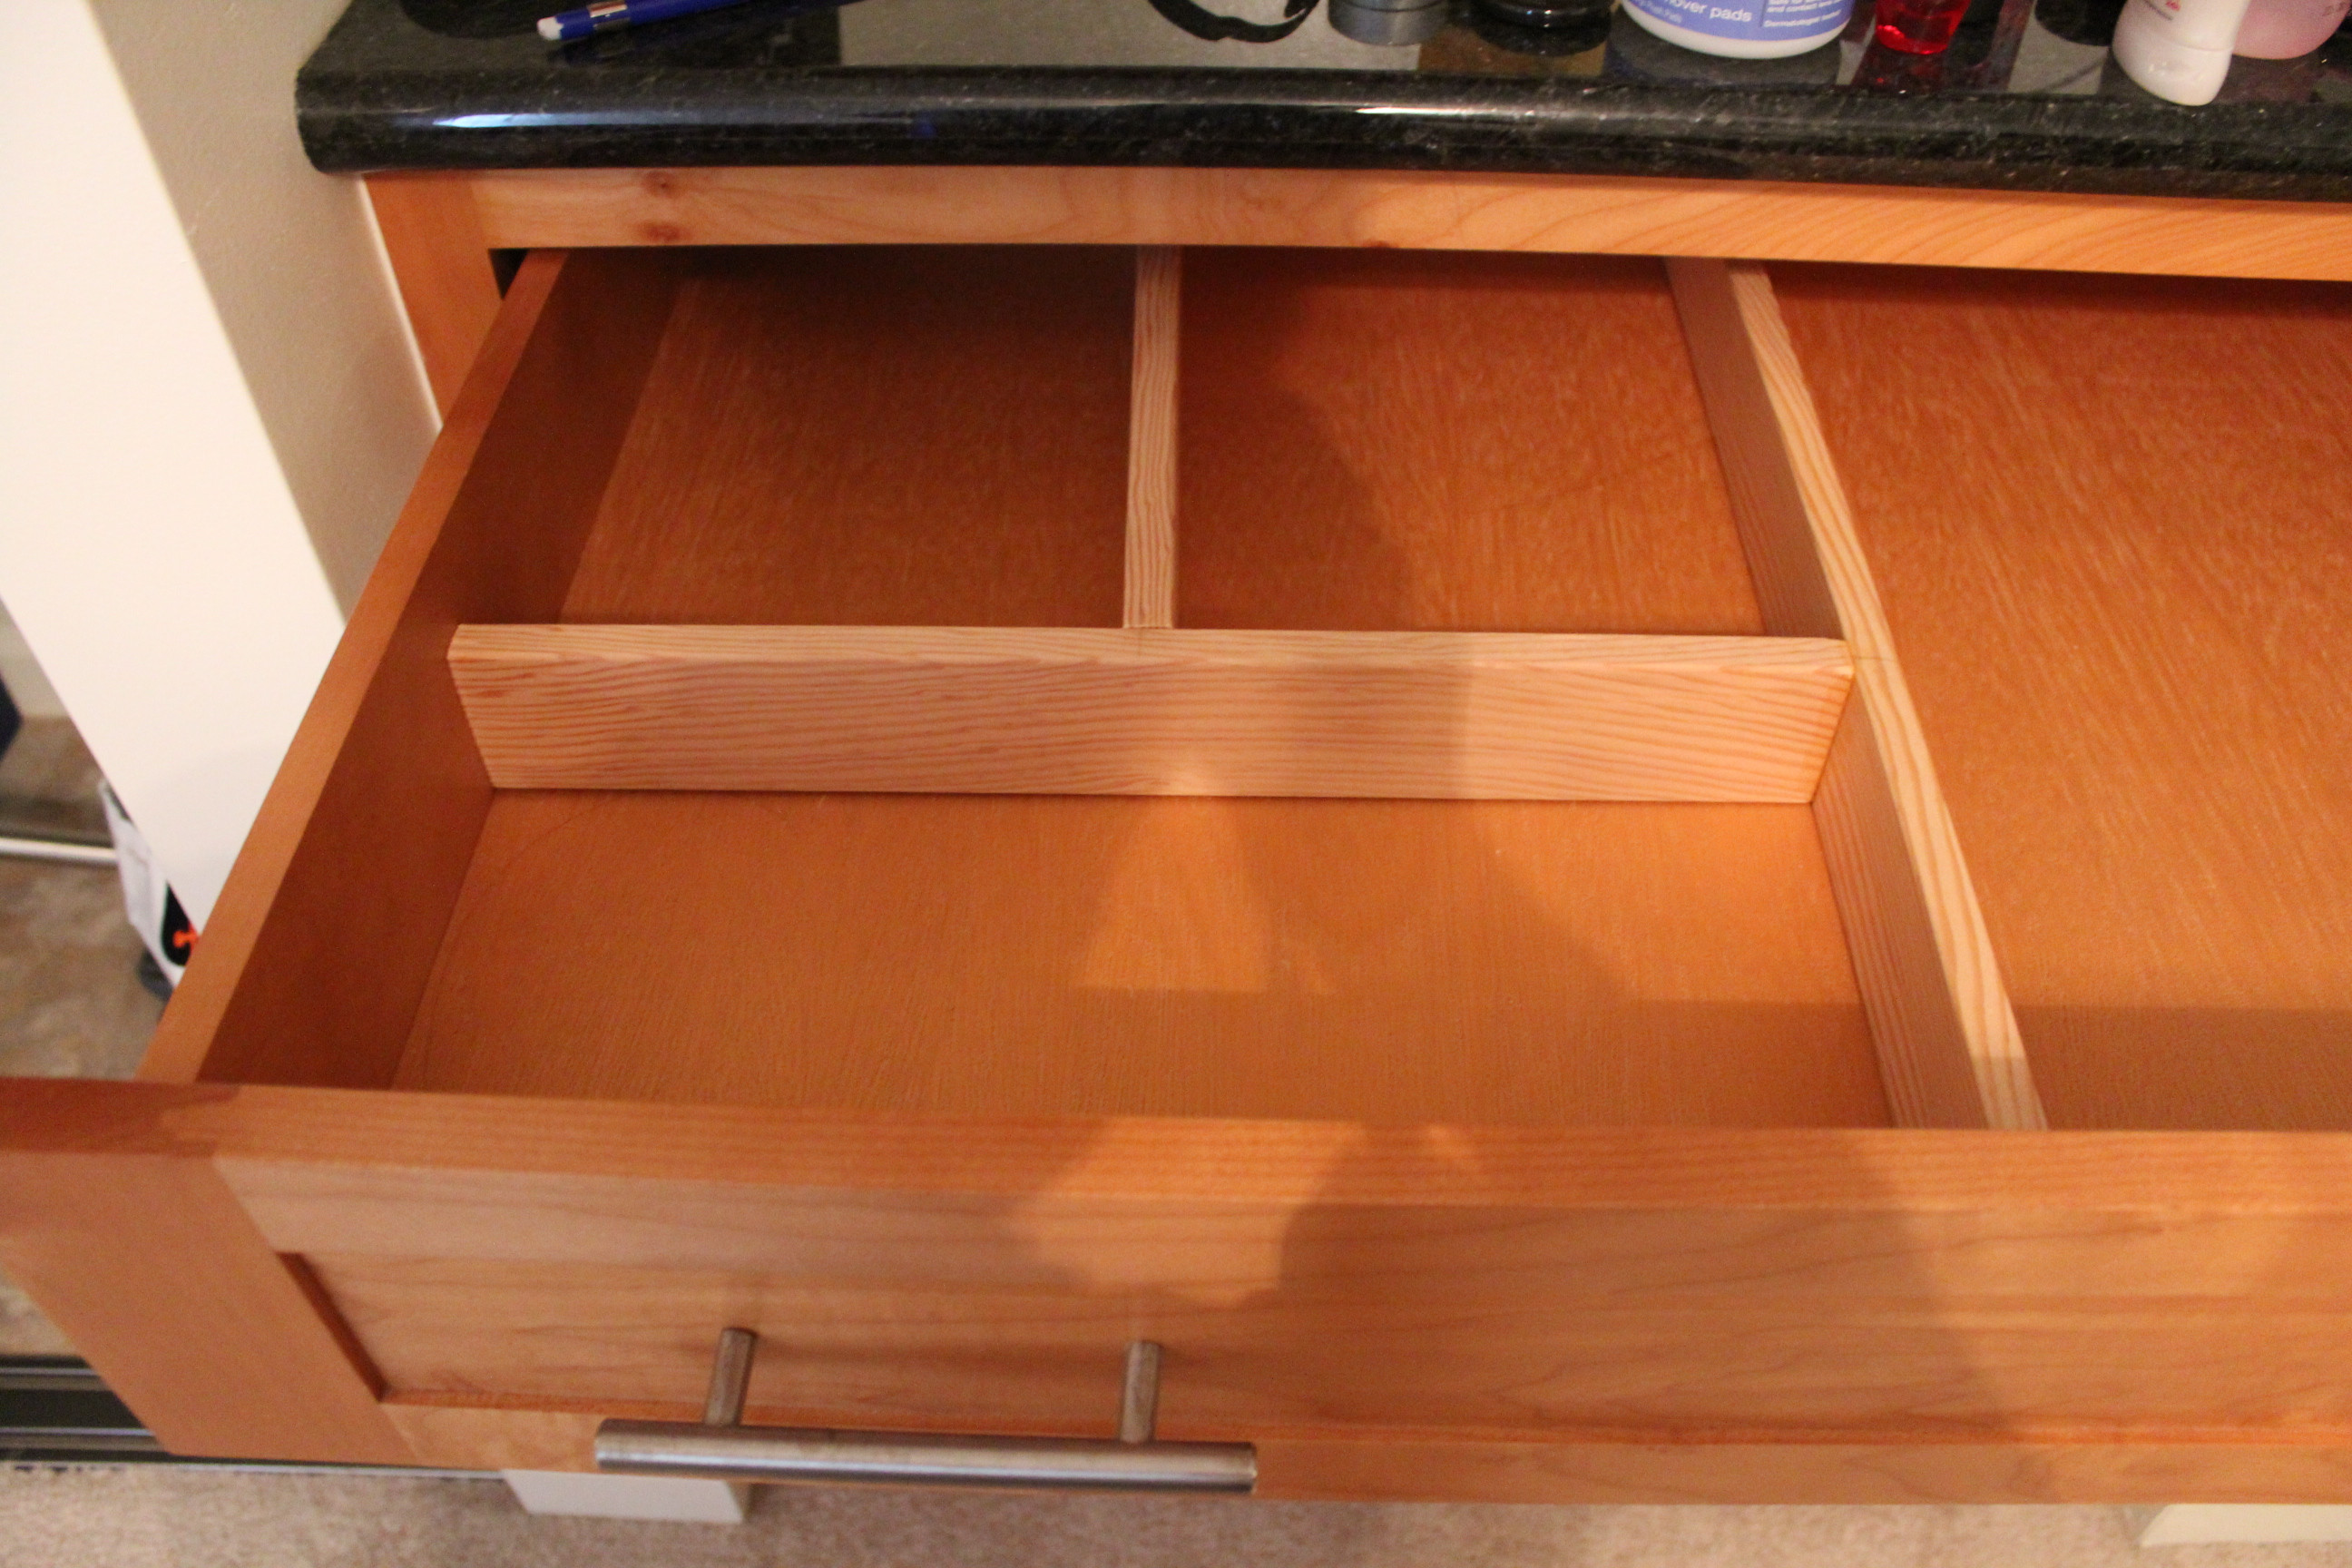 Best ideas about Drawer Dividers DIY . Save or Pin Home Organization DIY Drawer Dividers Now.